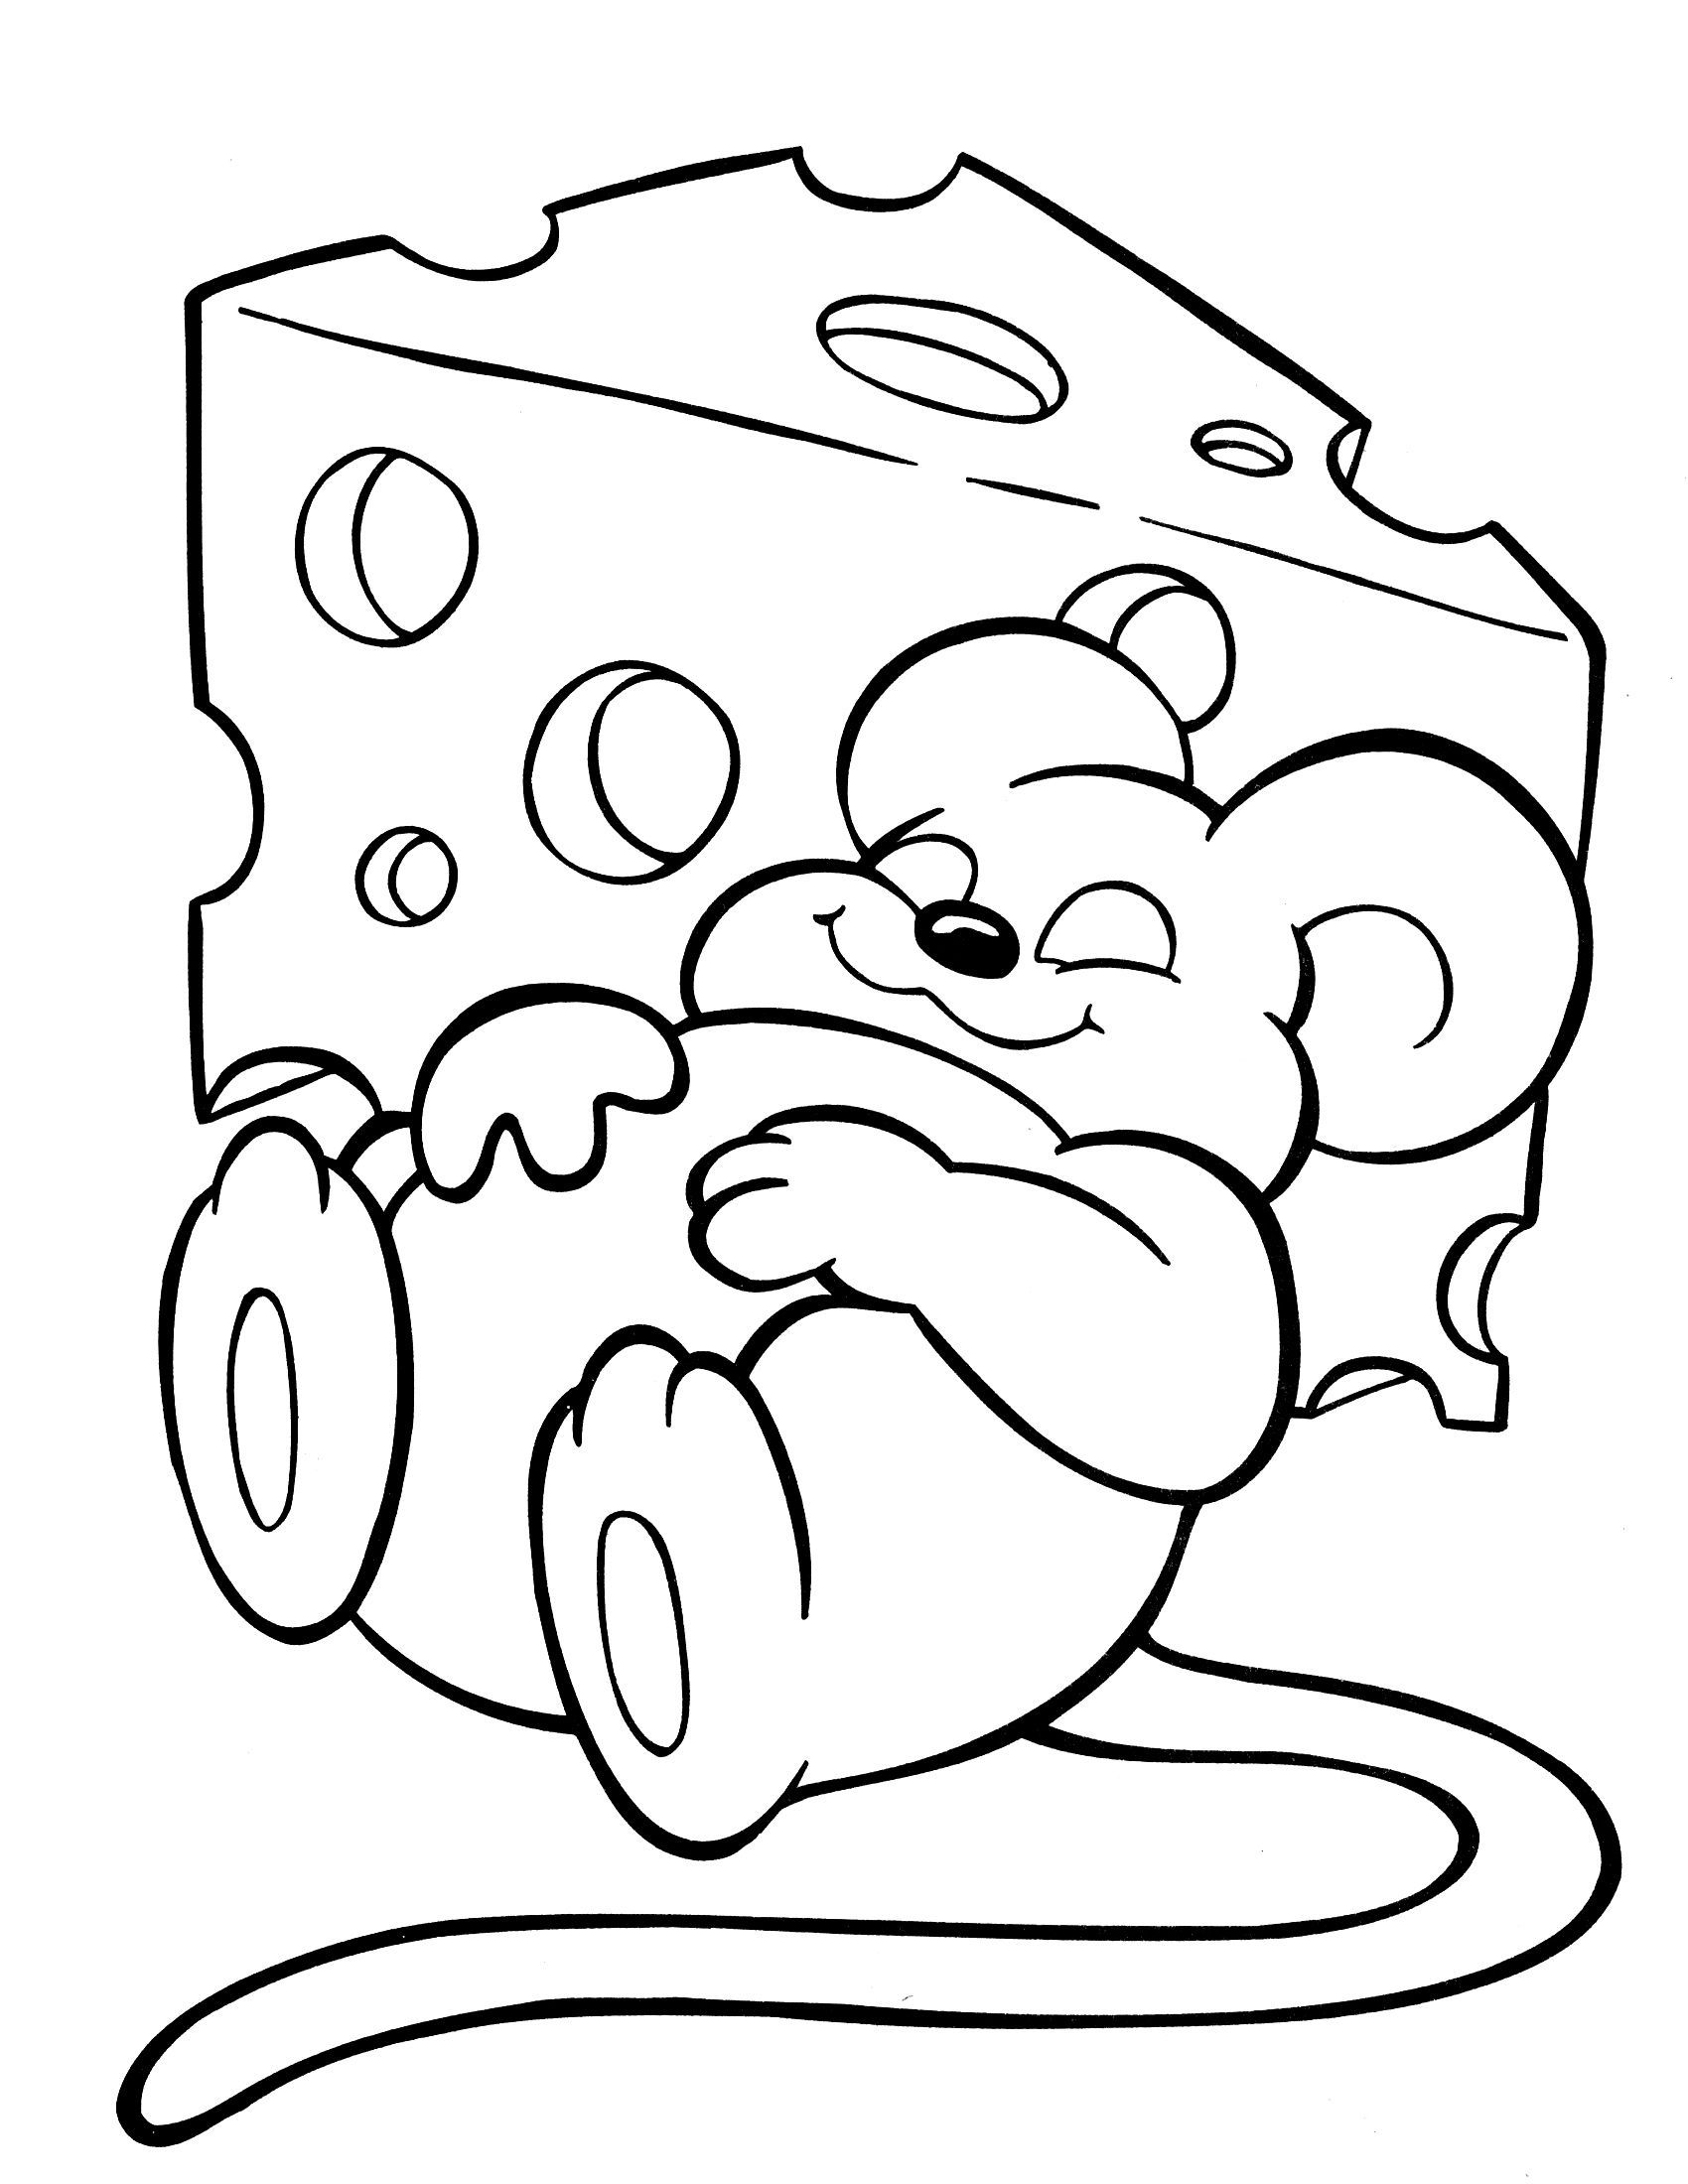 Fresh Coloring Pages Crayola Download  Muster malvorlagen